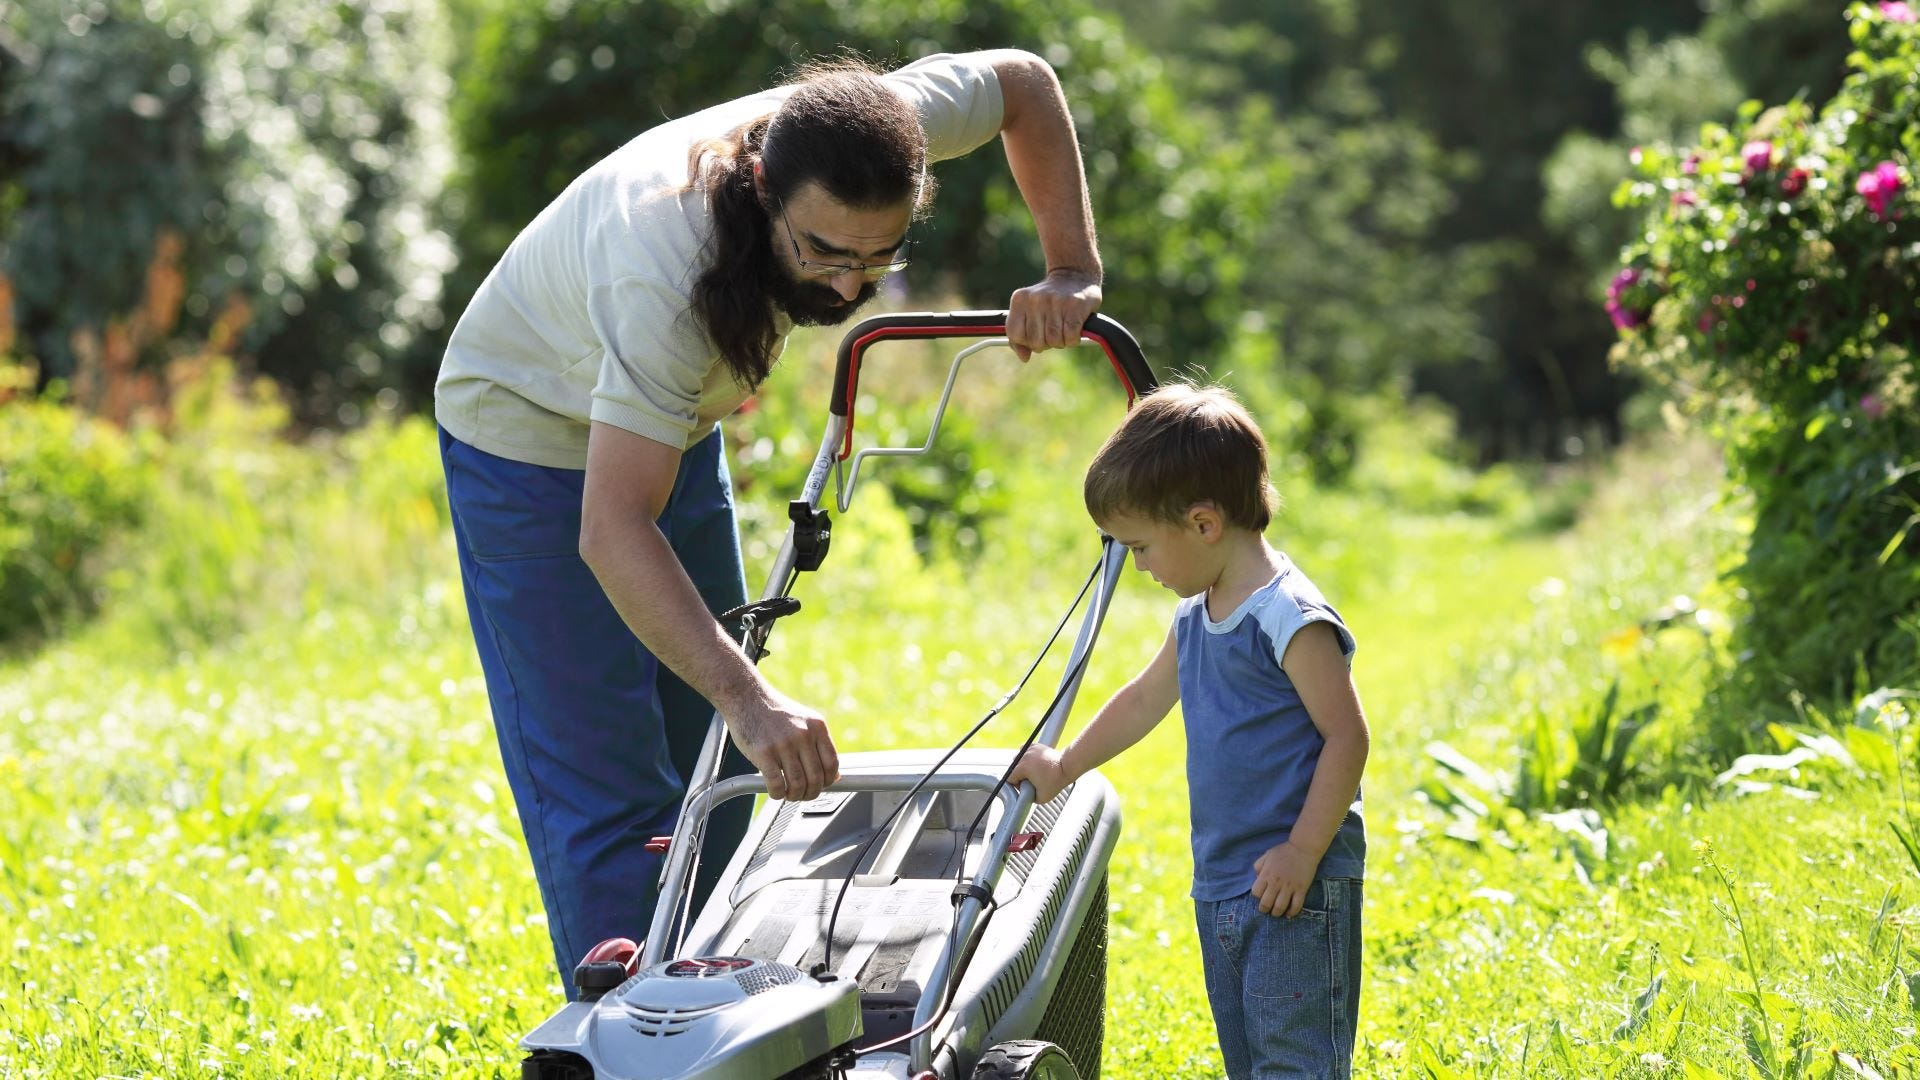 A man showing a little boy how to work a lawnmower.